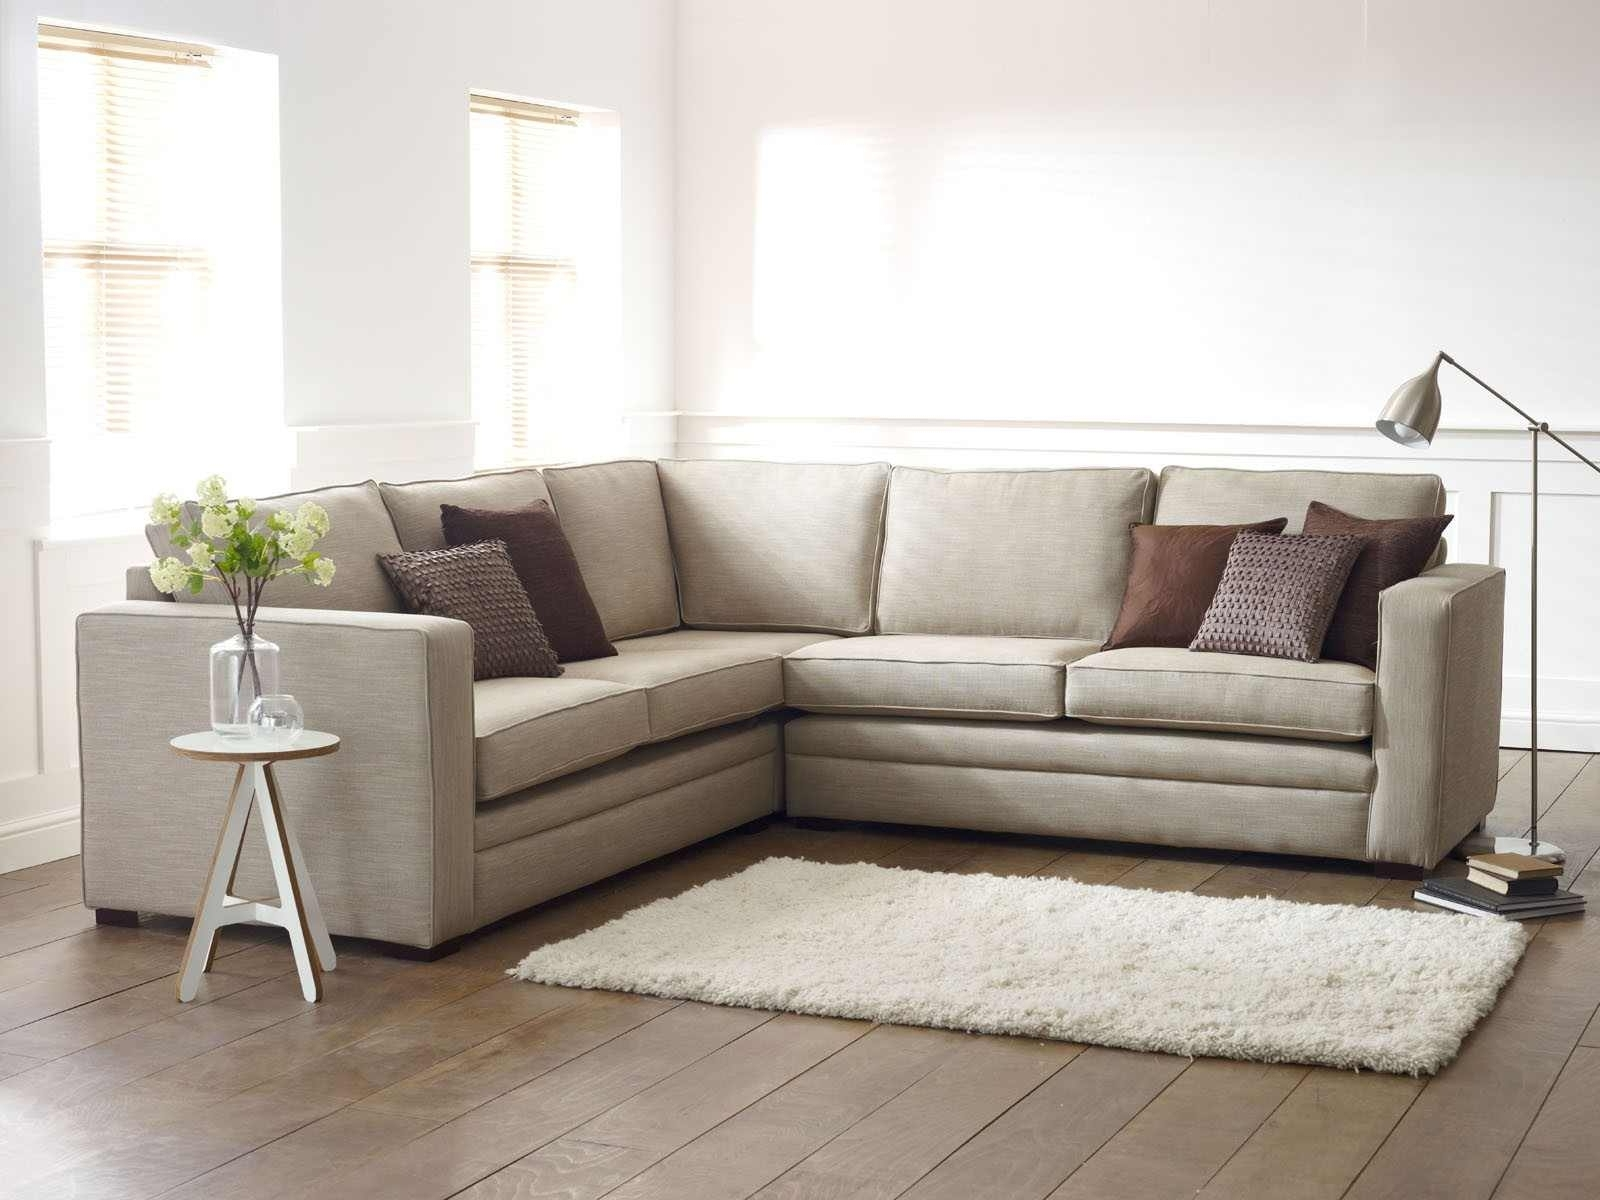 Latest Popular L Shaped Sofas – Greenville Home Trend : Fascinating L Pertaining To L Shaped Sofas (View 10 of 20)